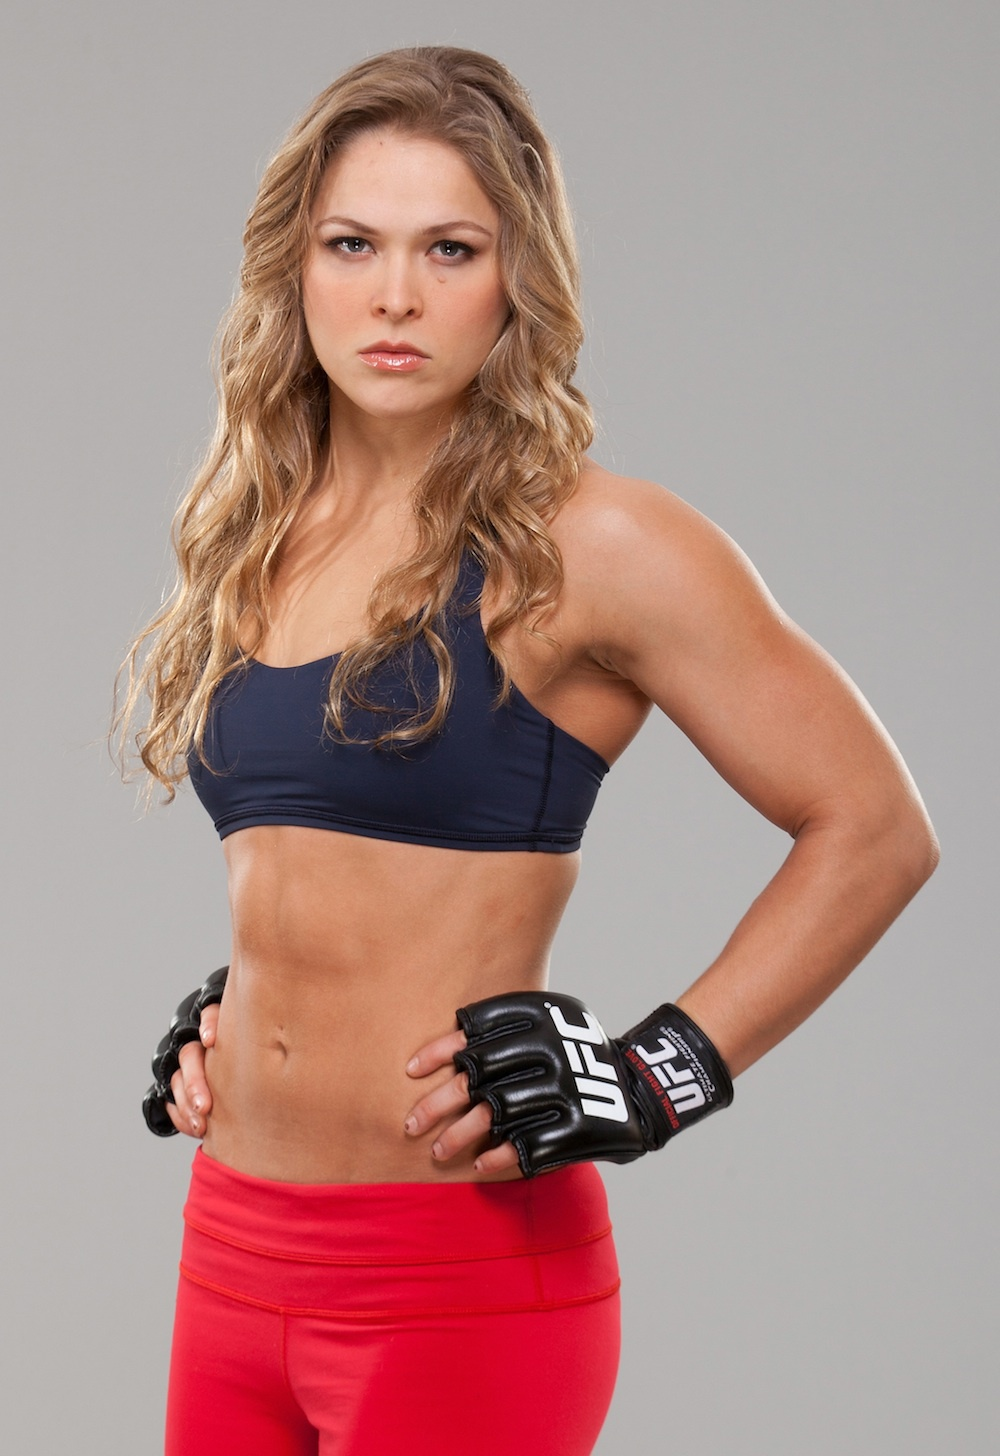 Ronda Rousey High Quality Wallpapers For Iphone